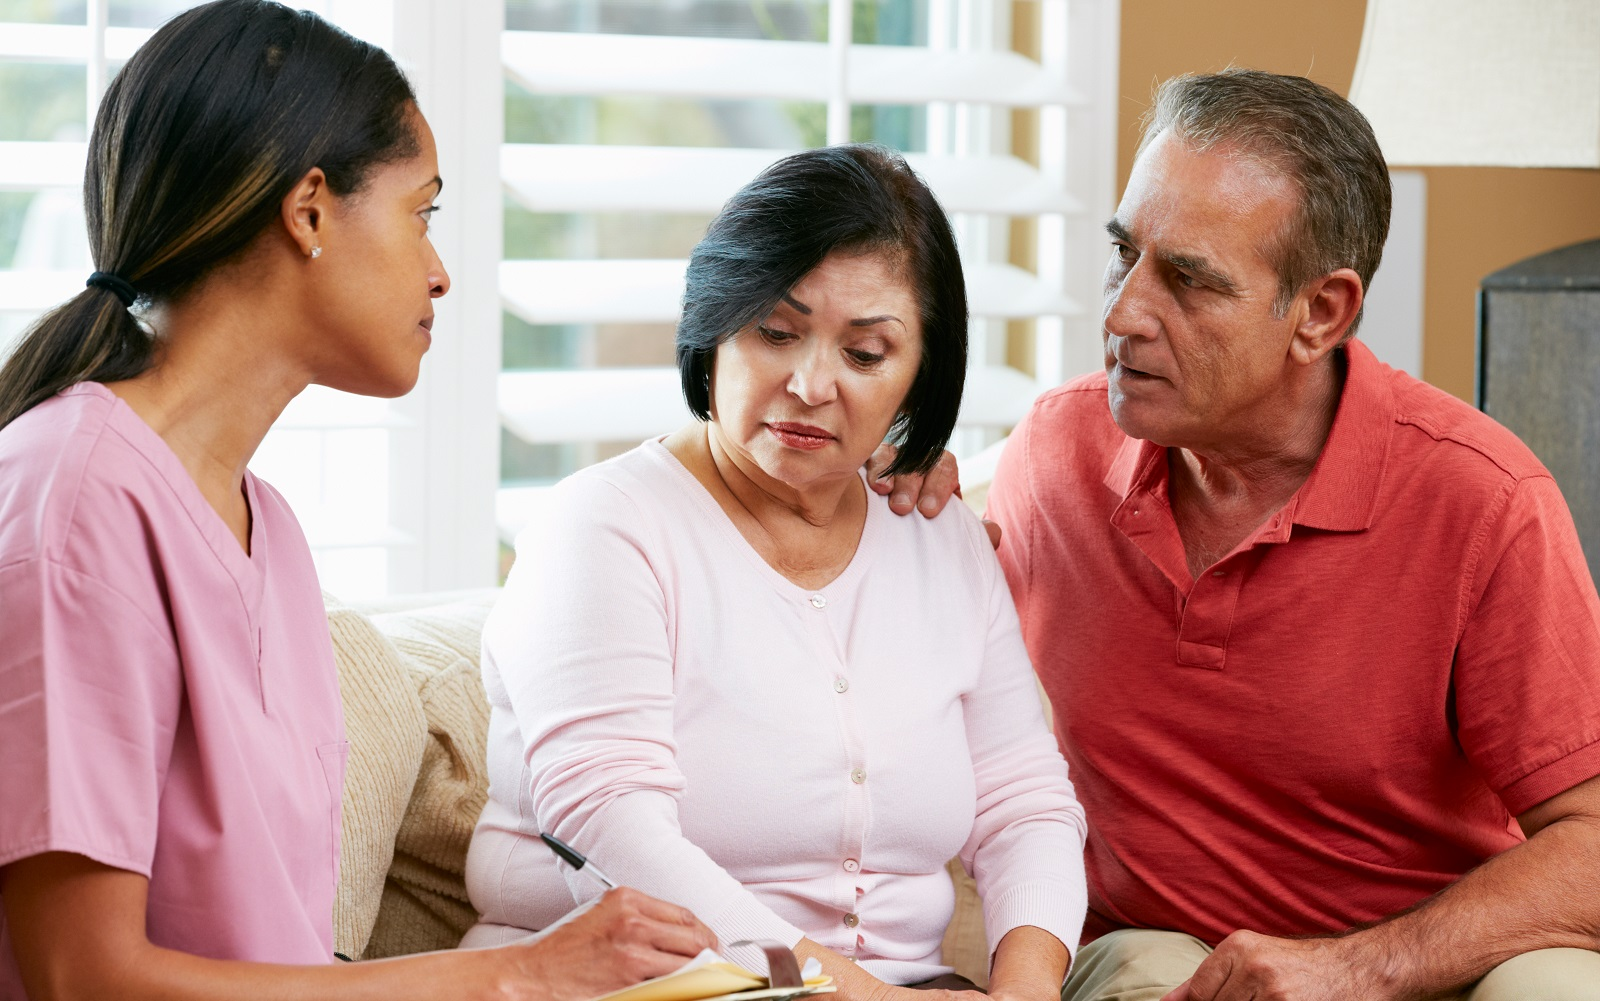 A female African-American nurse speaking with an older Latino couple and taking notes.